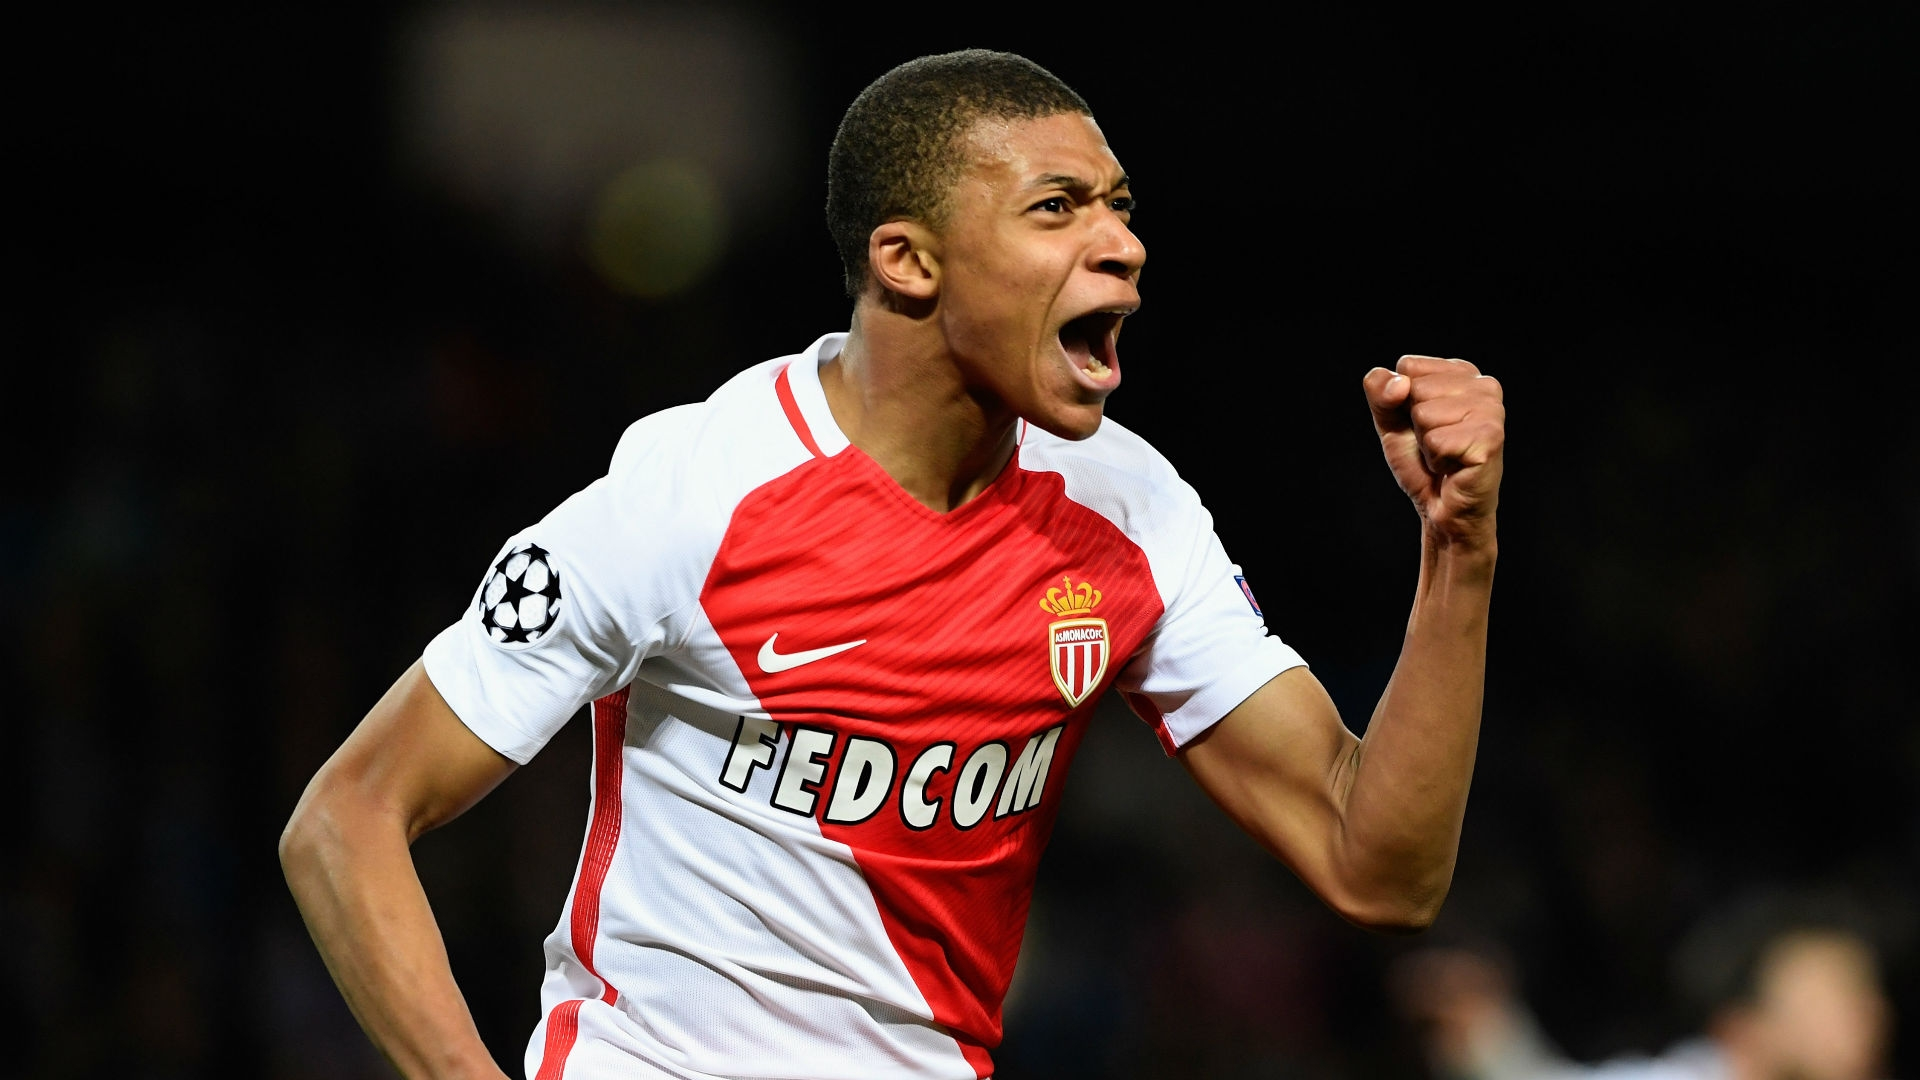 Perez claims the club is keeping track of Kylian Mbappe and Gianluigi Donnarumma.